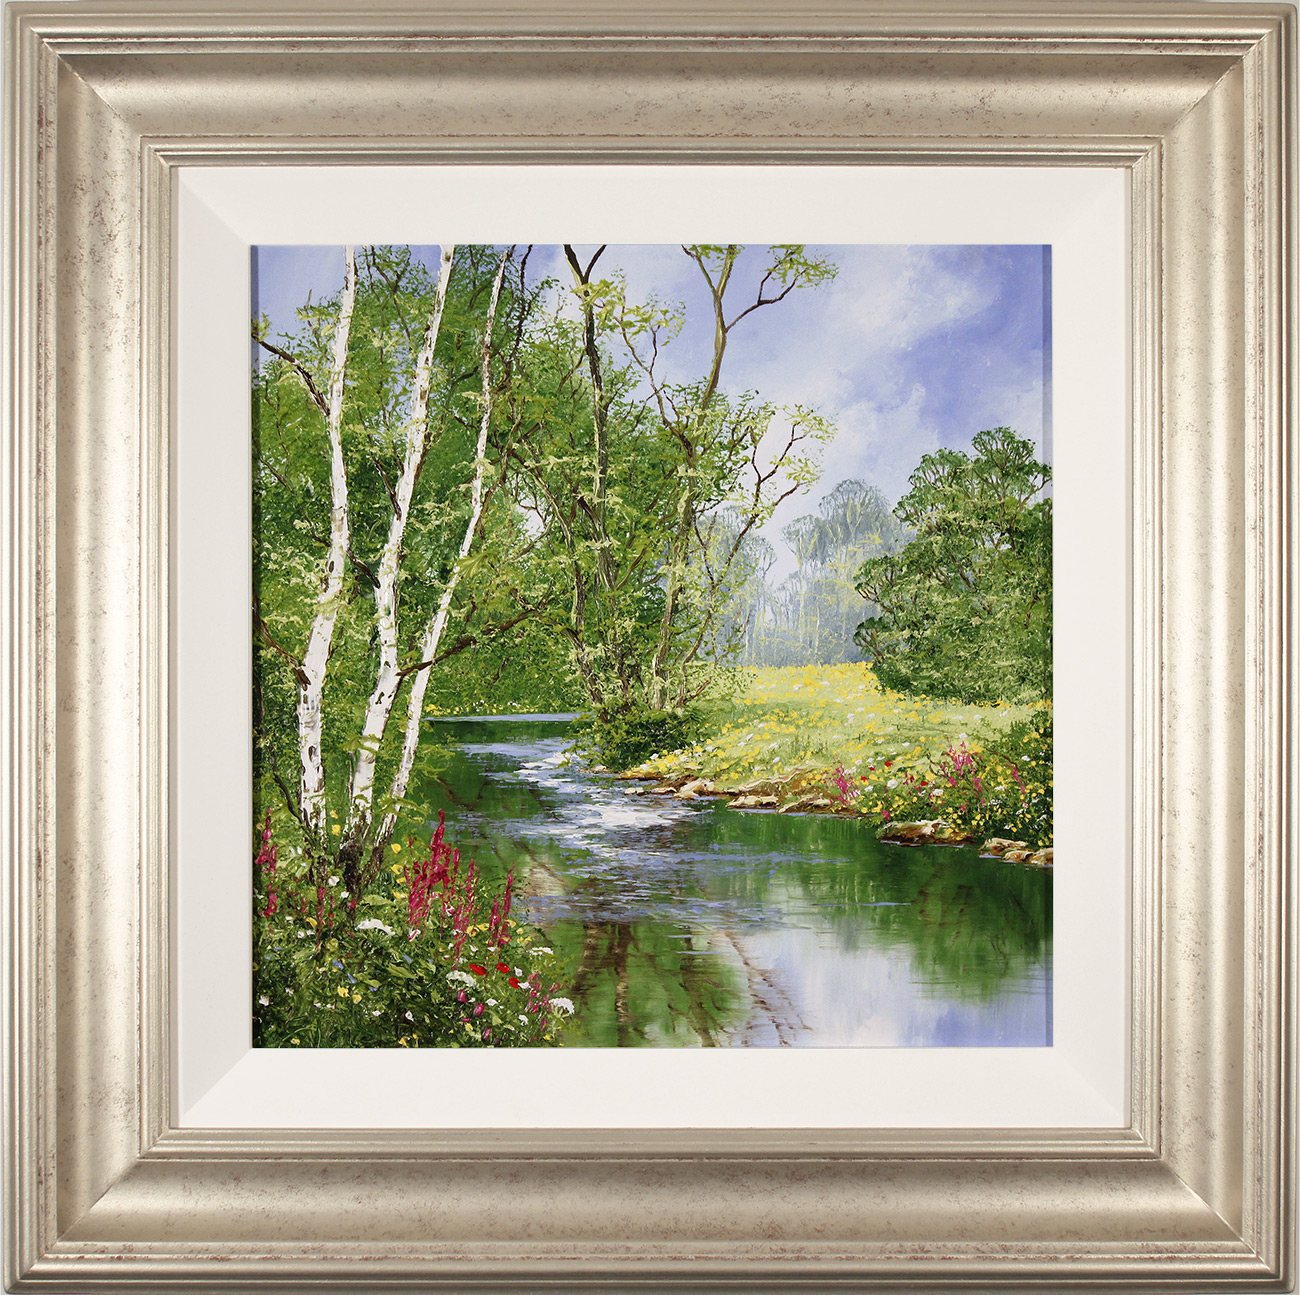 Terry Evans, Original oil painting on panel, Willdflower Walk, North Yorkshire, click to enlarge